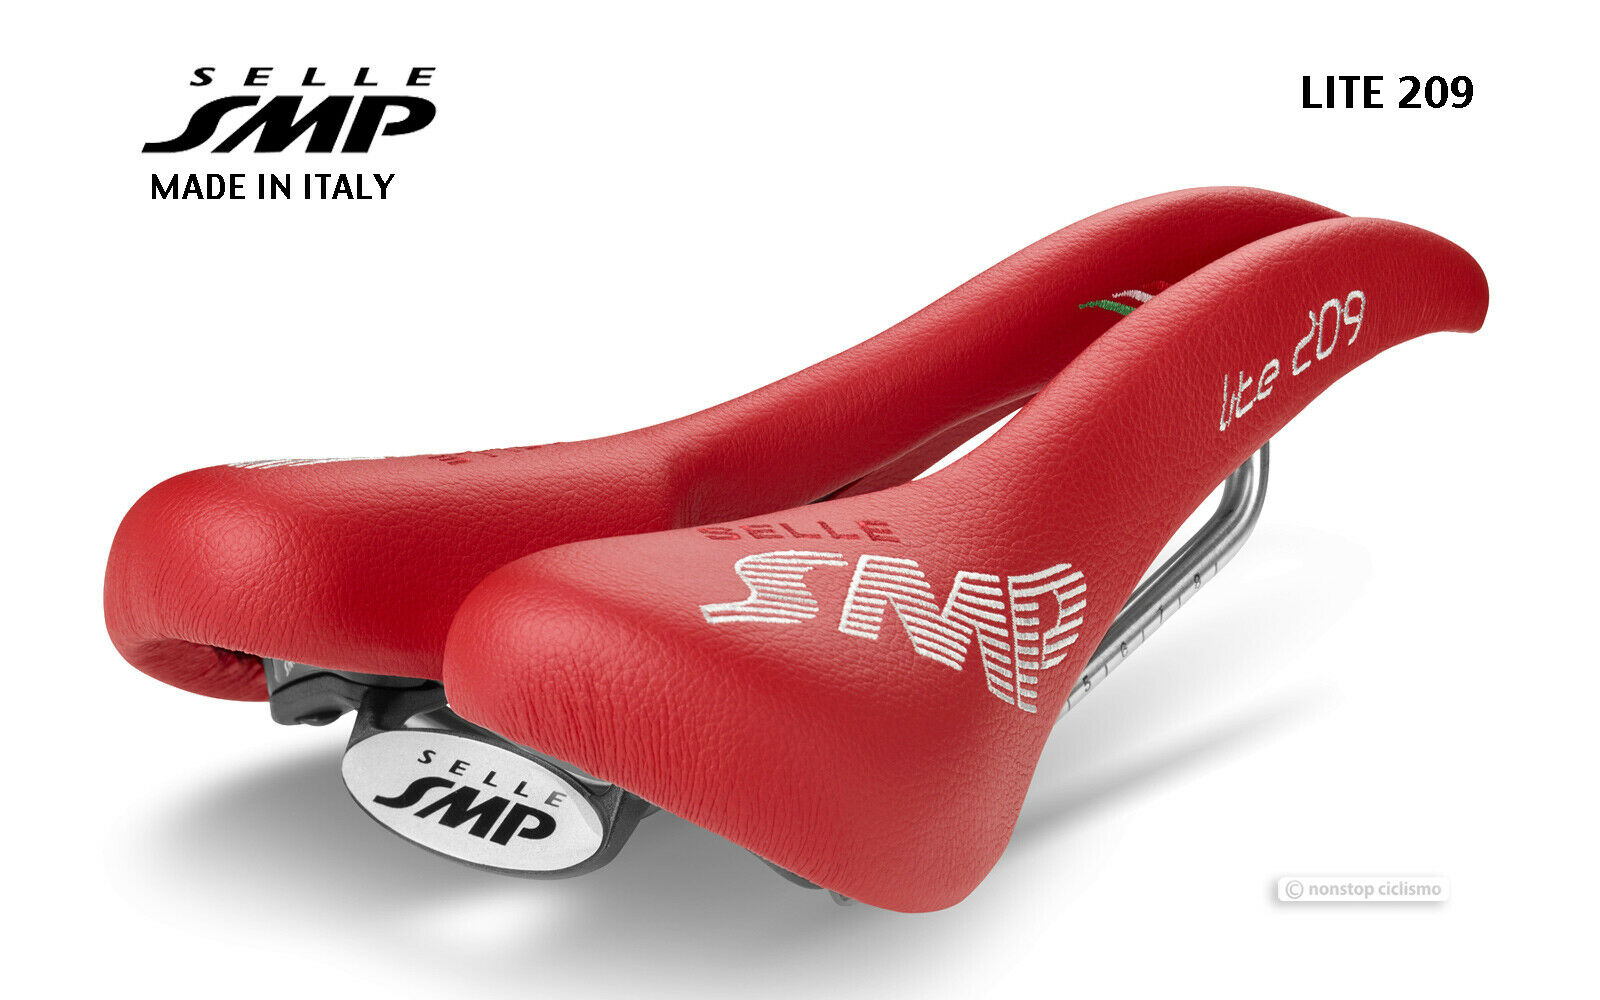 NEW Selle  SMP 2019 LITE 209 SMP4BIKE Road MTB Bicycle Saddle   RED  exclusive